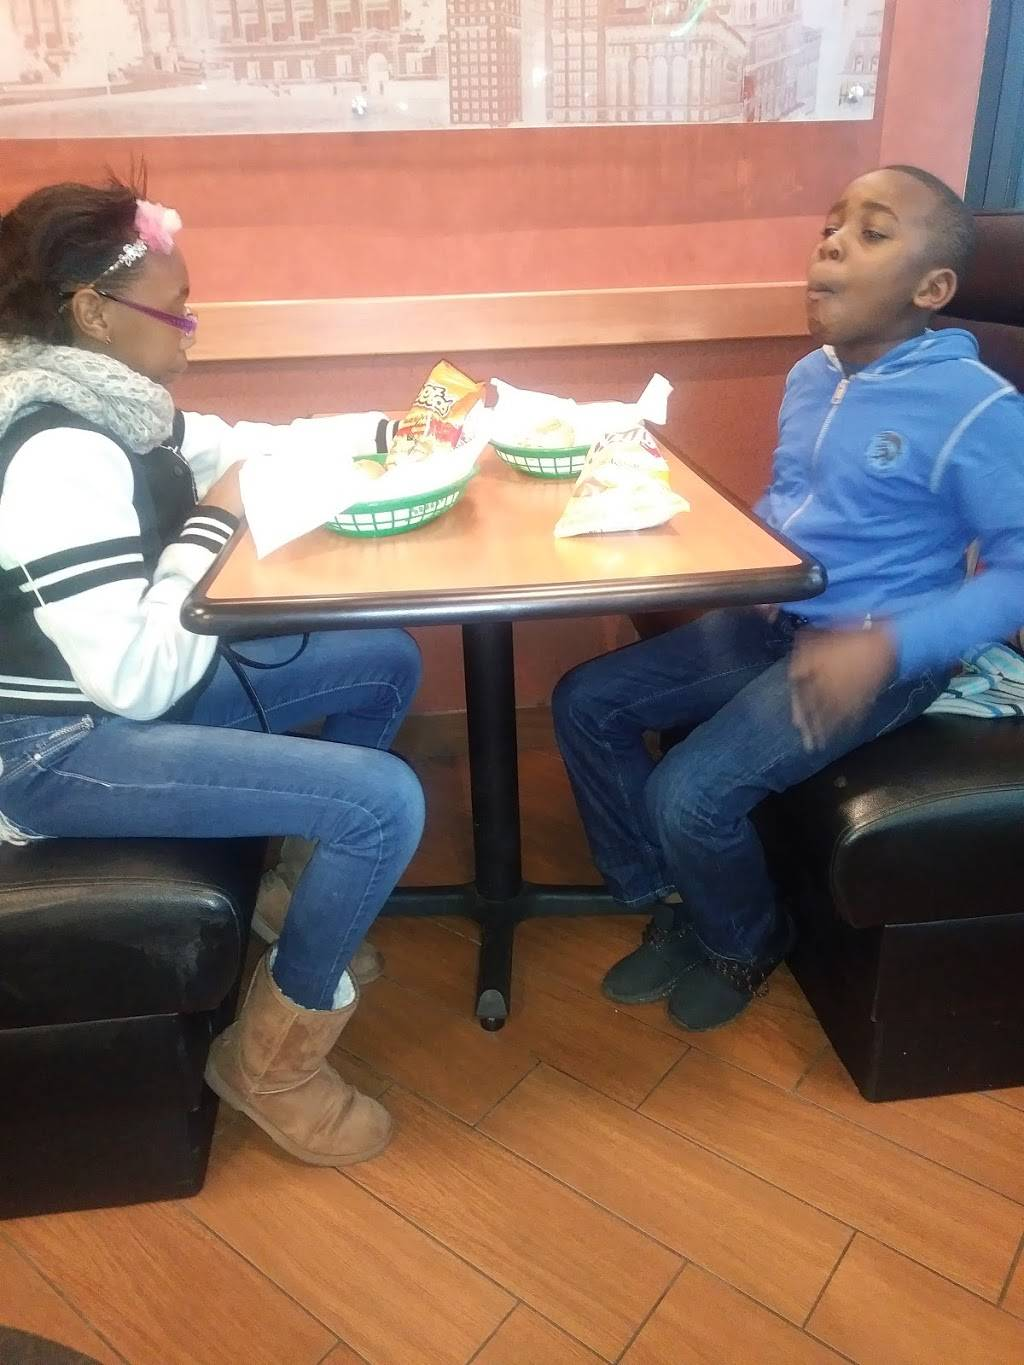 Subway Restaurants | restaurant | 643 W Lincoln Hwy, Chicago Heights, IL 60411, USA | 7083002312 OR +1 708-300-2312